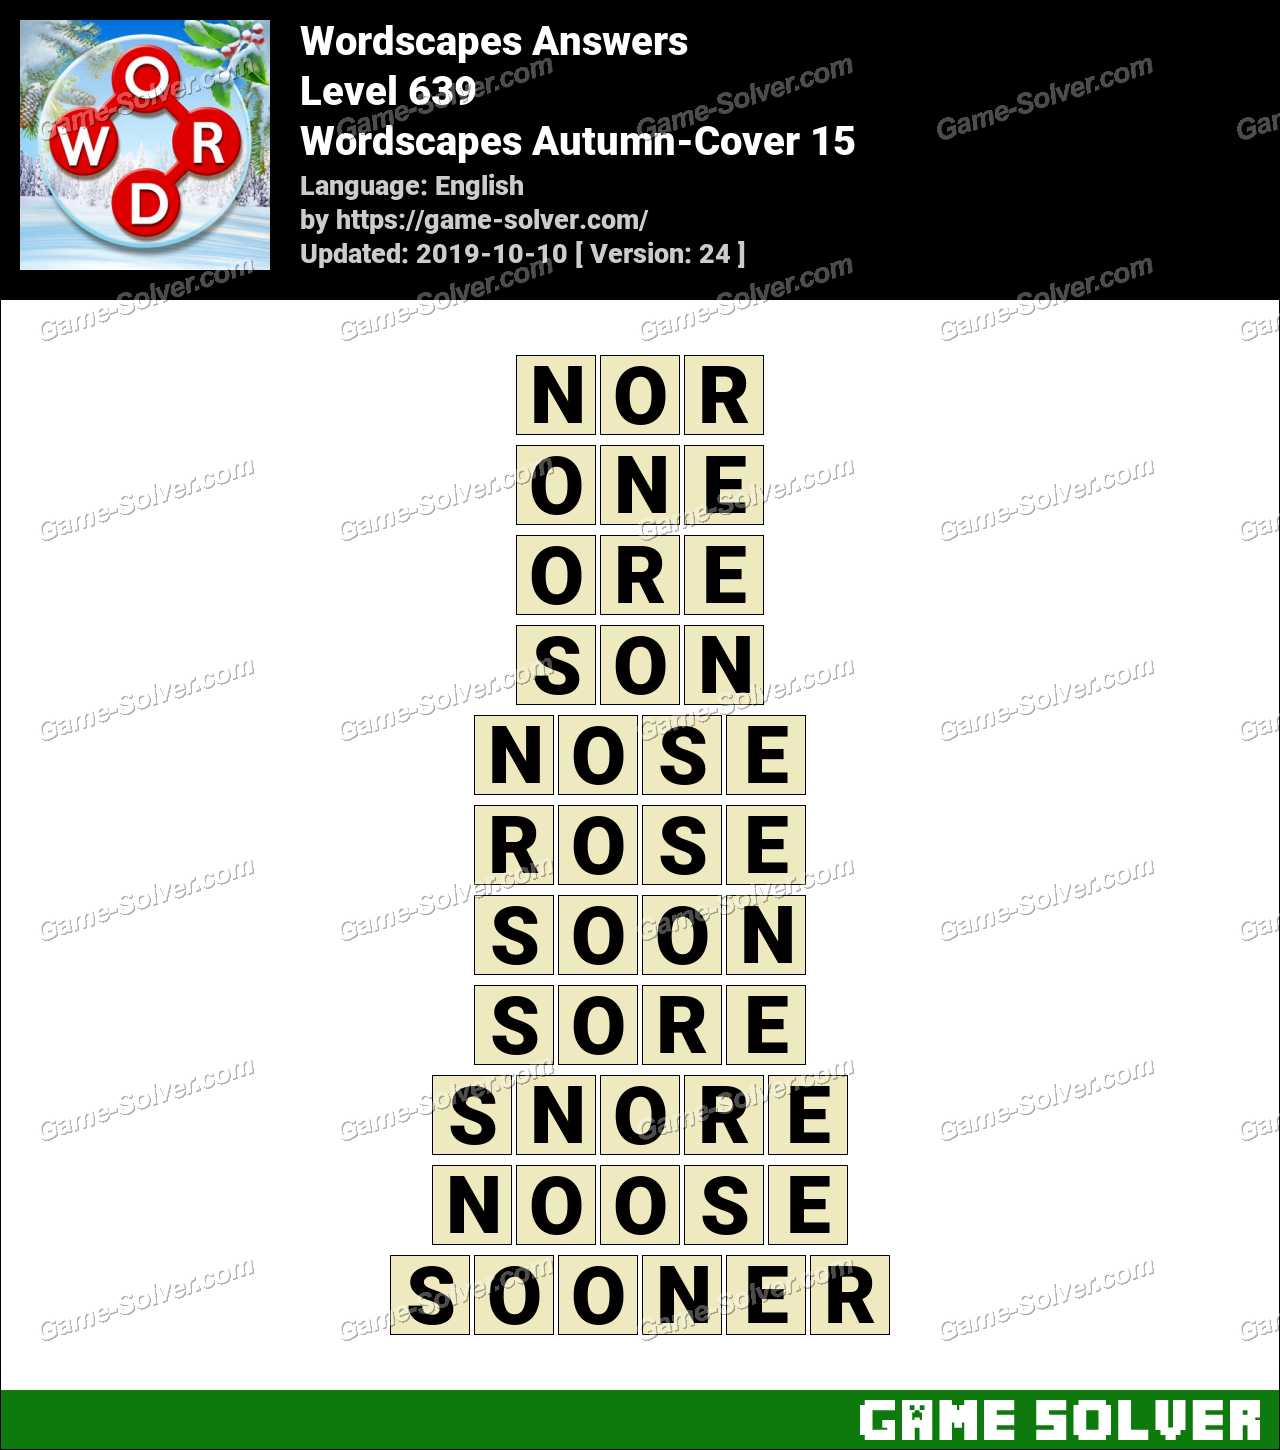 Wordscapes Autumn-Cover 15 Answers